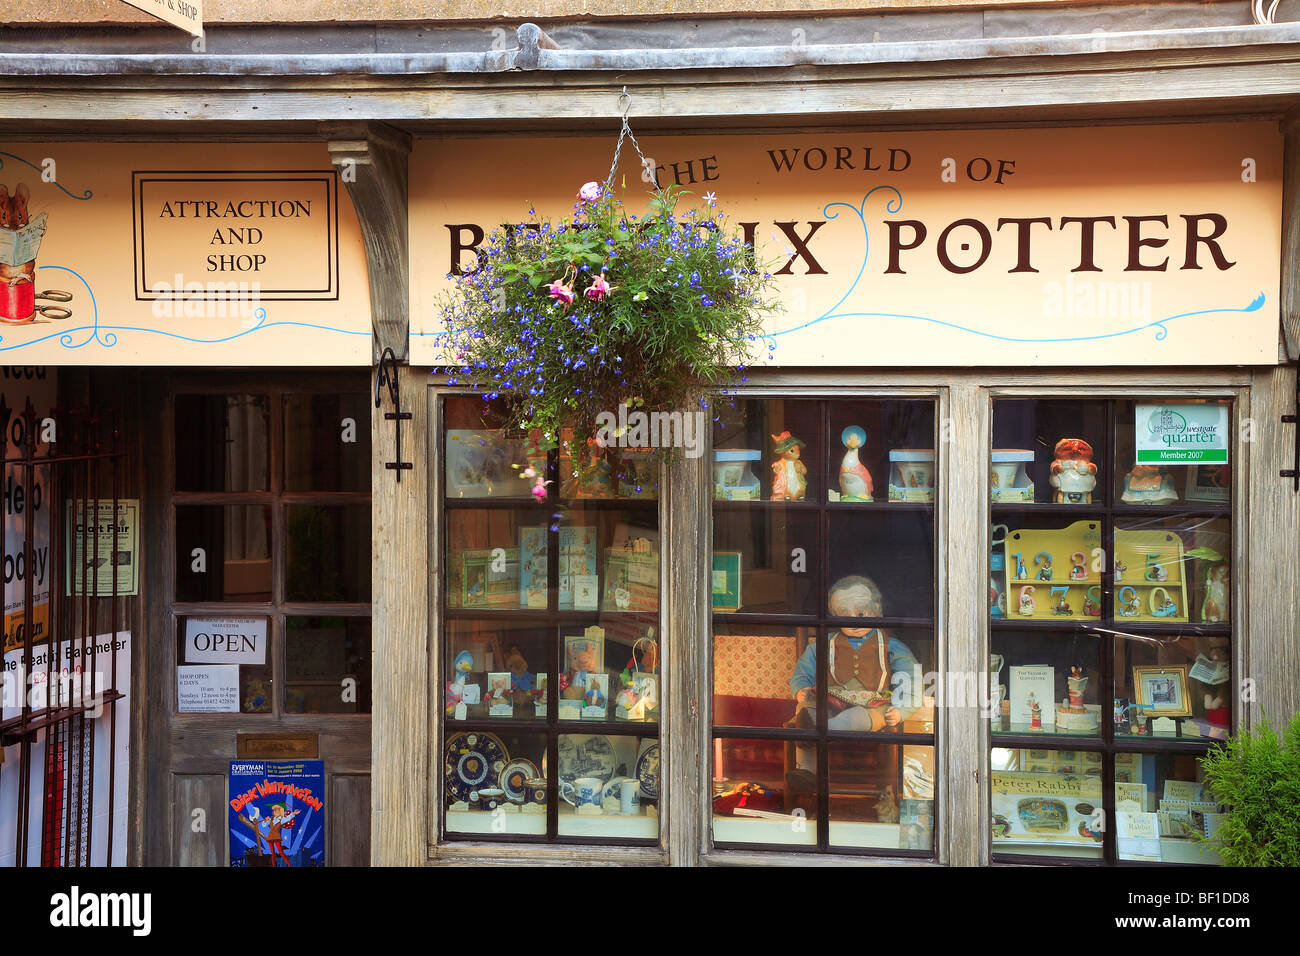 The House of the Taylor Beatrix Potter Shop in Gloucester, Gloucestershire England - Stock Image